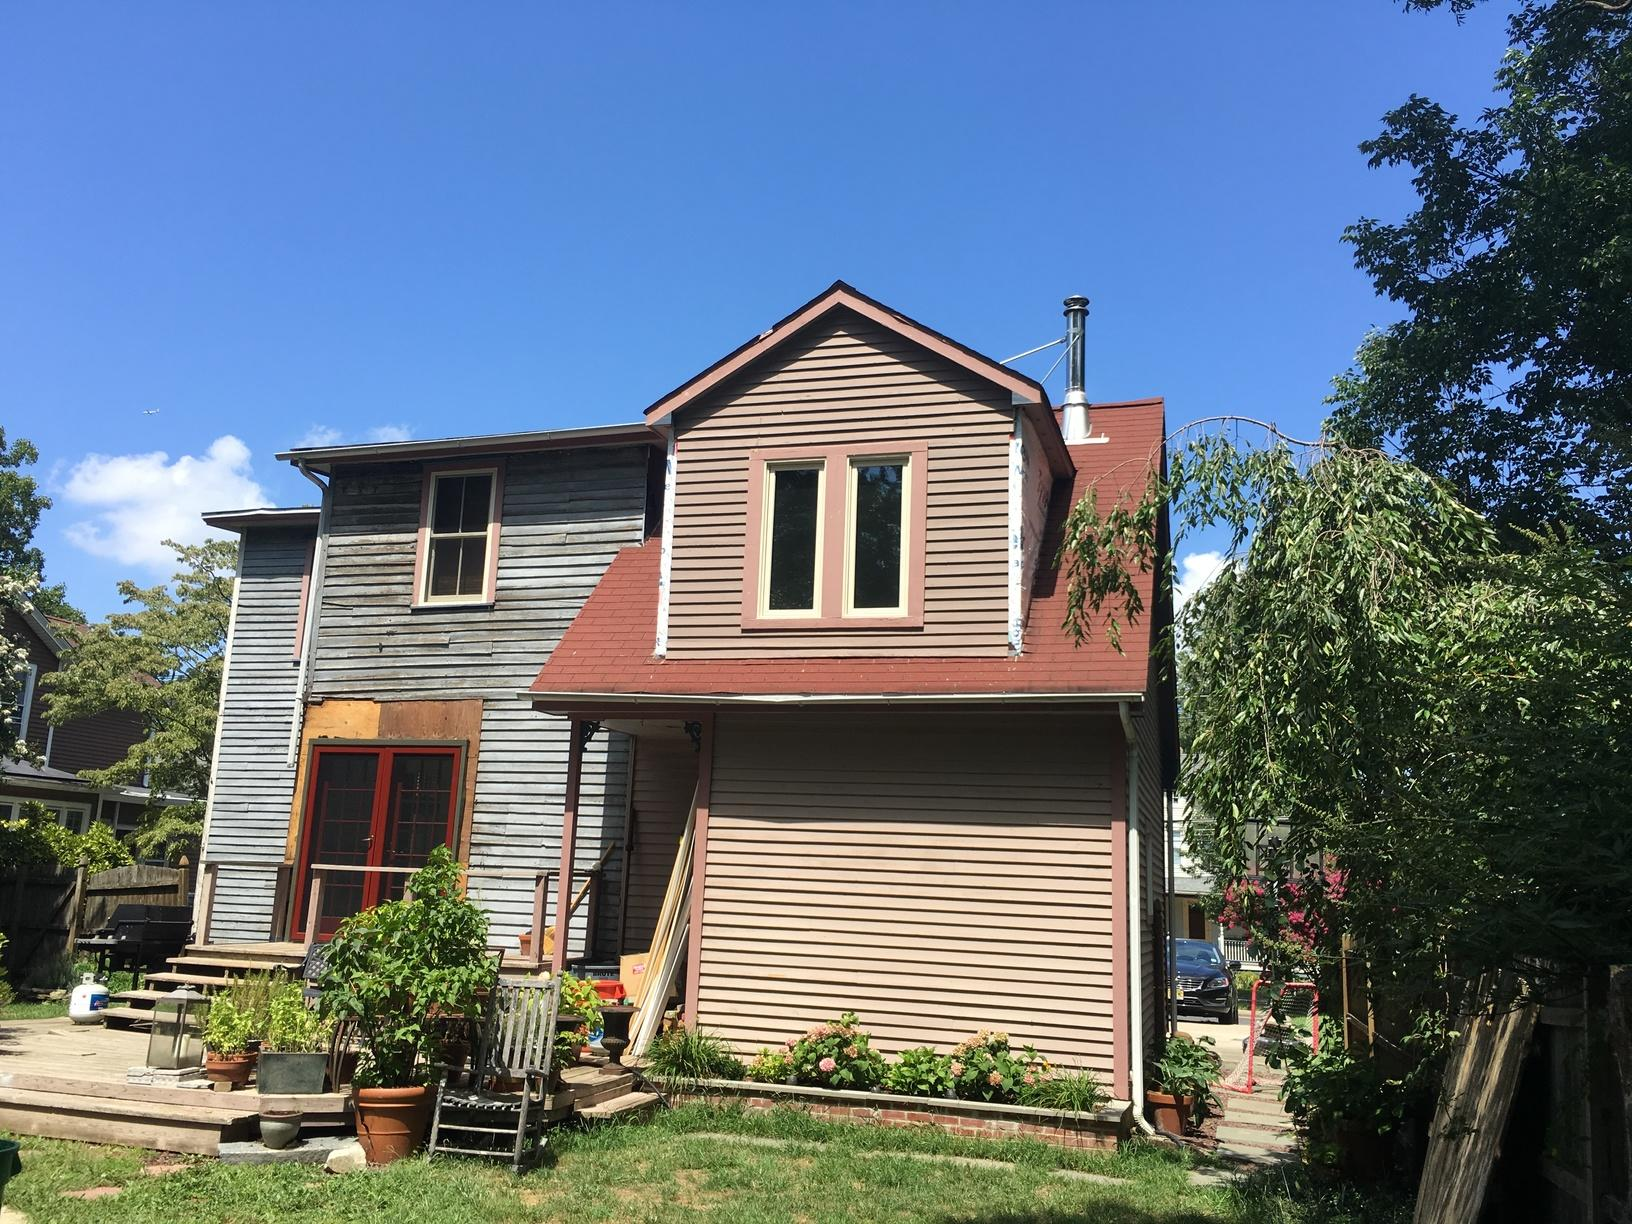 Replacing Old Asphalt Shingles with Mansard Brown Standing Seam Metal Roof in Haddonfield, NJ - Before Photo